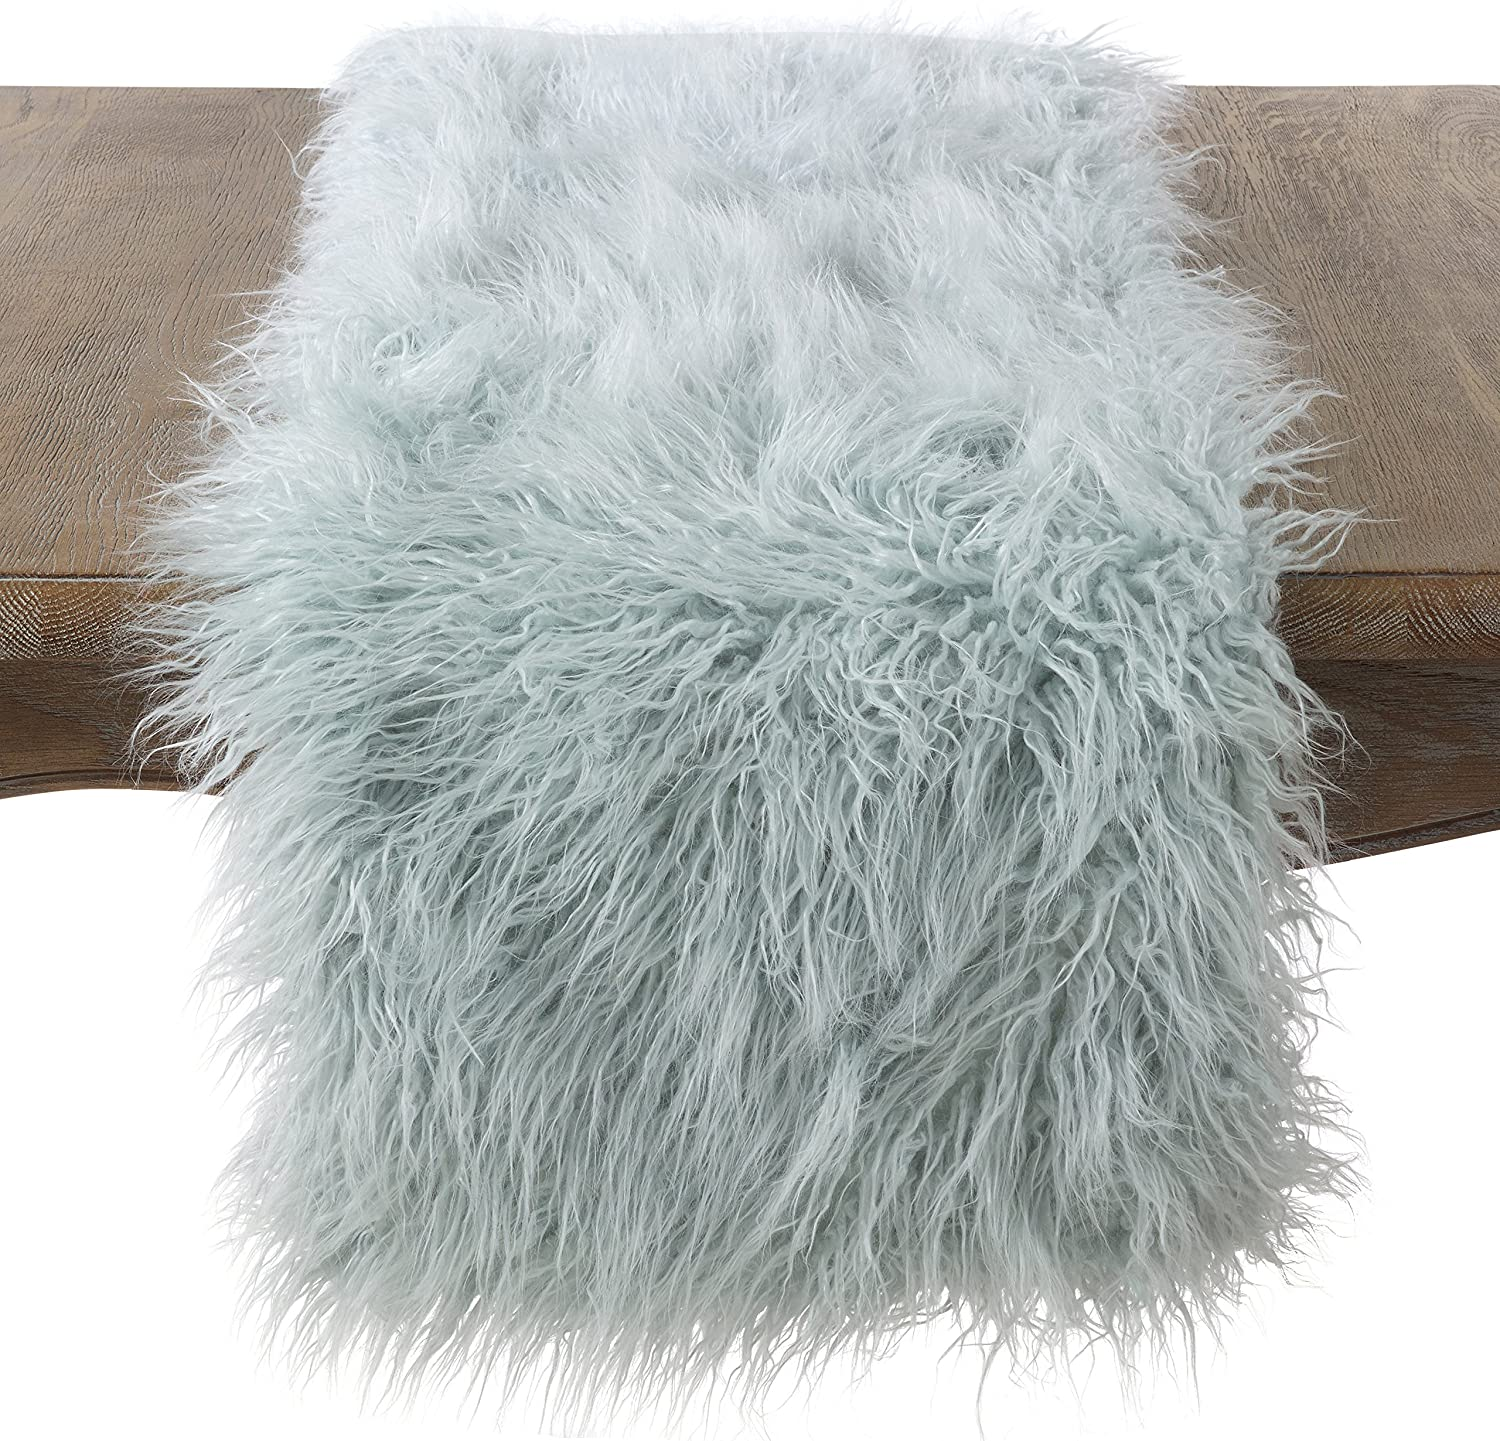 SARO LIFESTYLE Faux Mongolian Collection Design Runn Cheap Fur New product! New type Acrylic